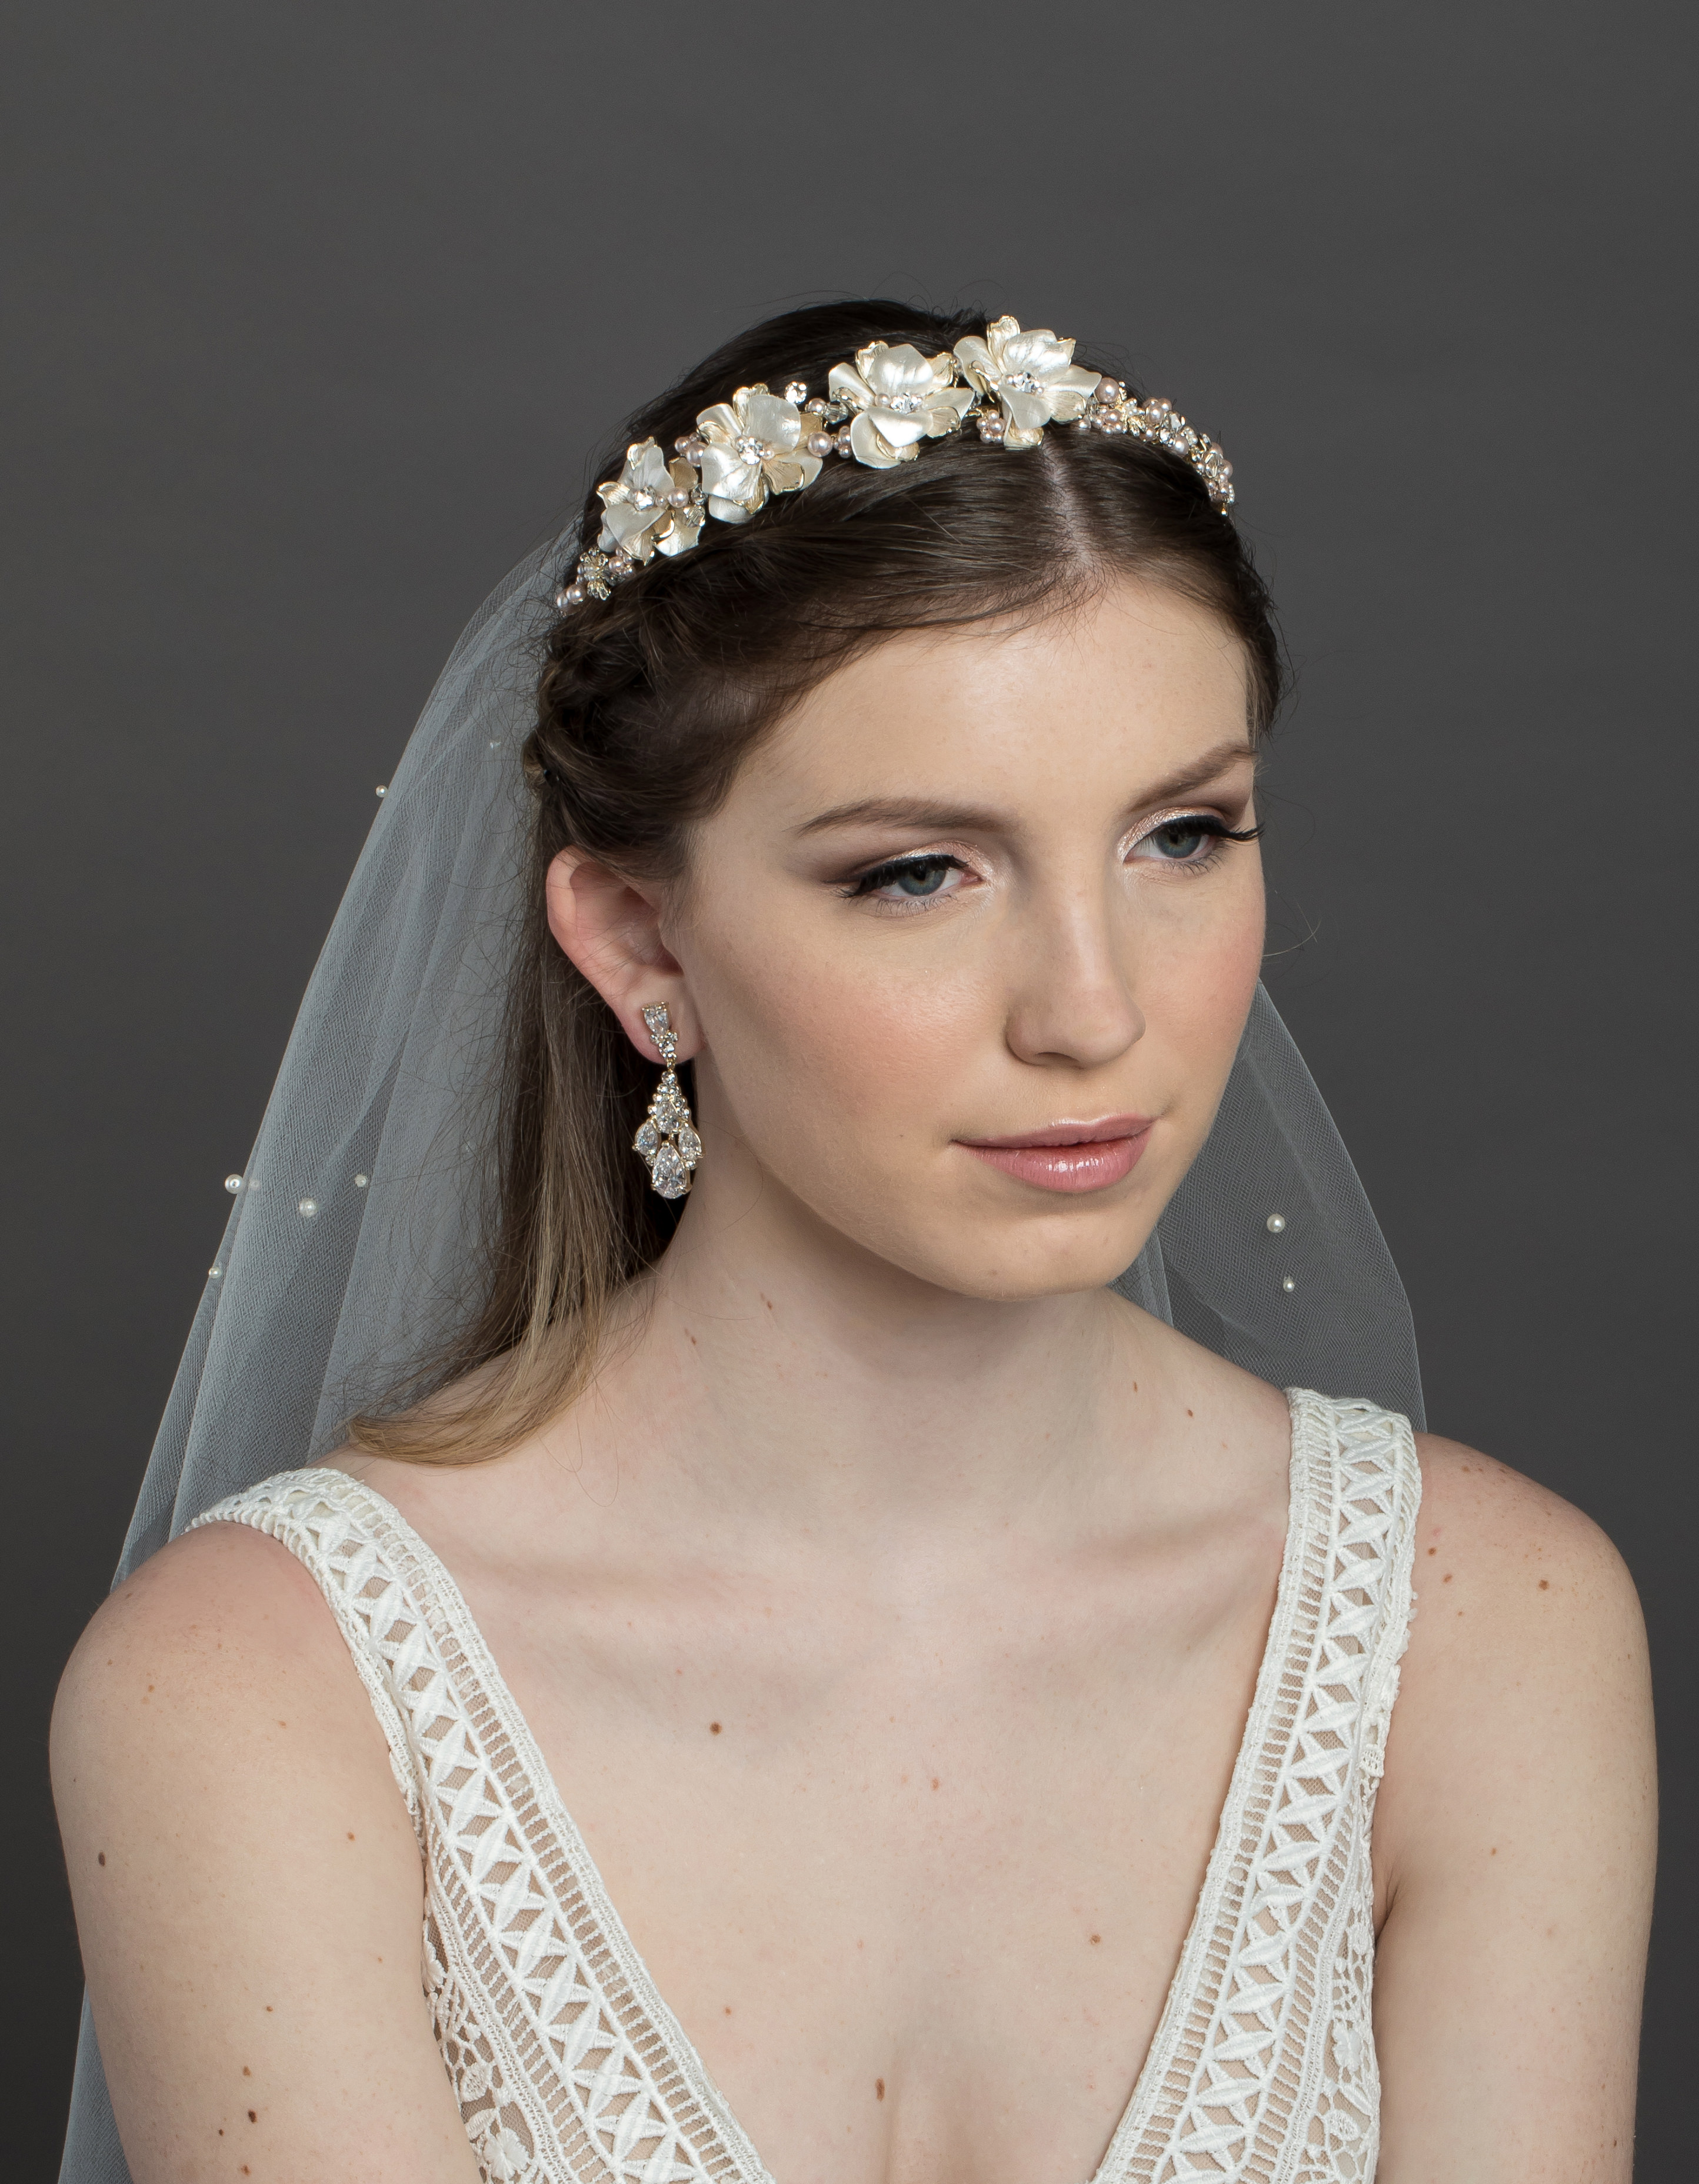 Bridal Classics Headbands, Wreaths & Vines T-4449